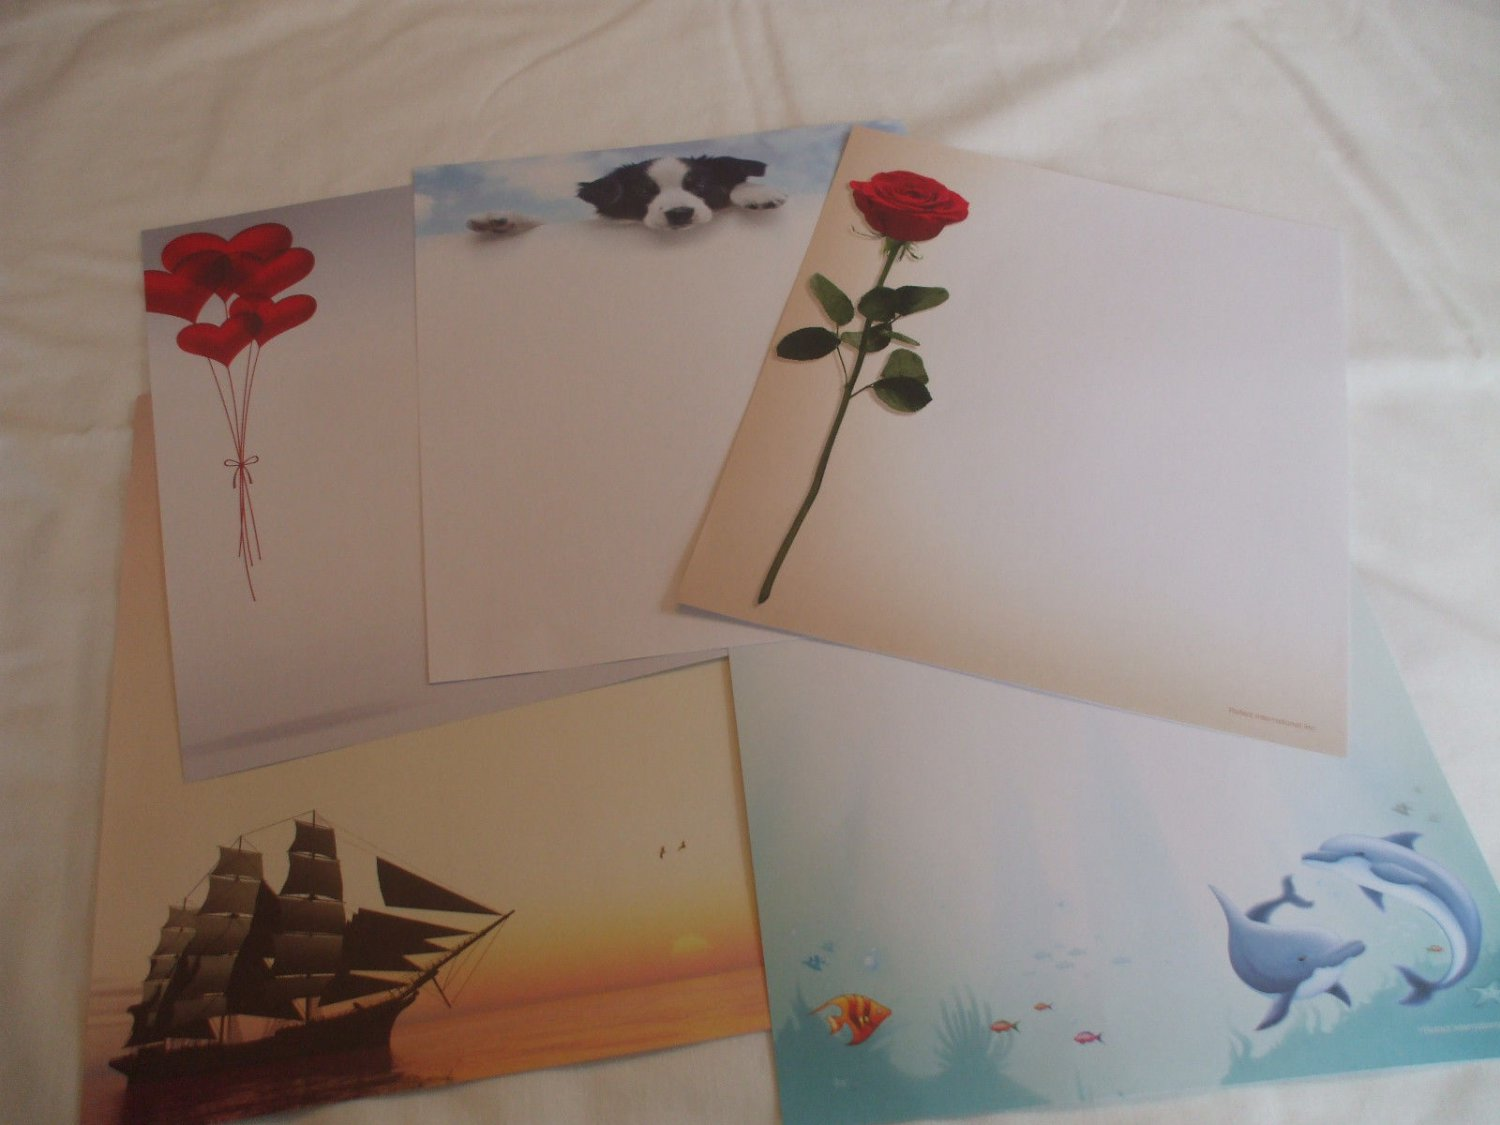 20 Sheets Decorative Paper Stationary 8.5 x 11 Red Rose Dolphins Sailboat Puppy